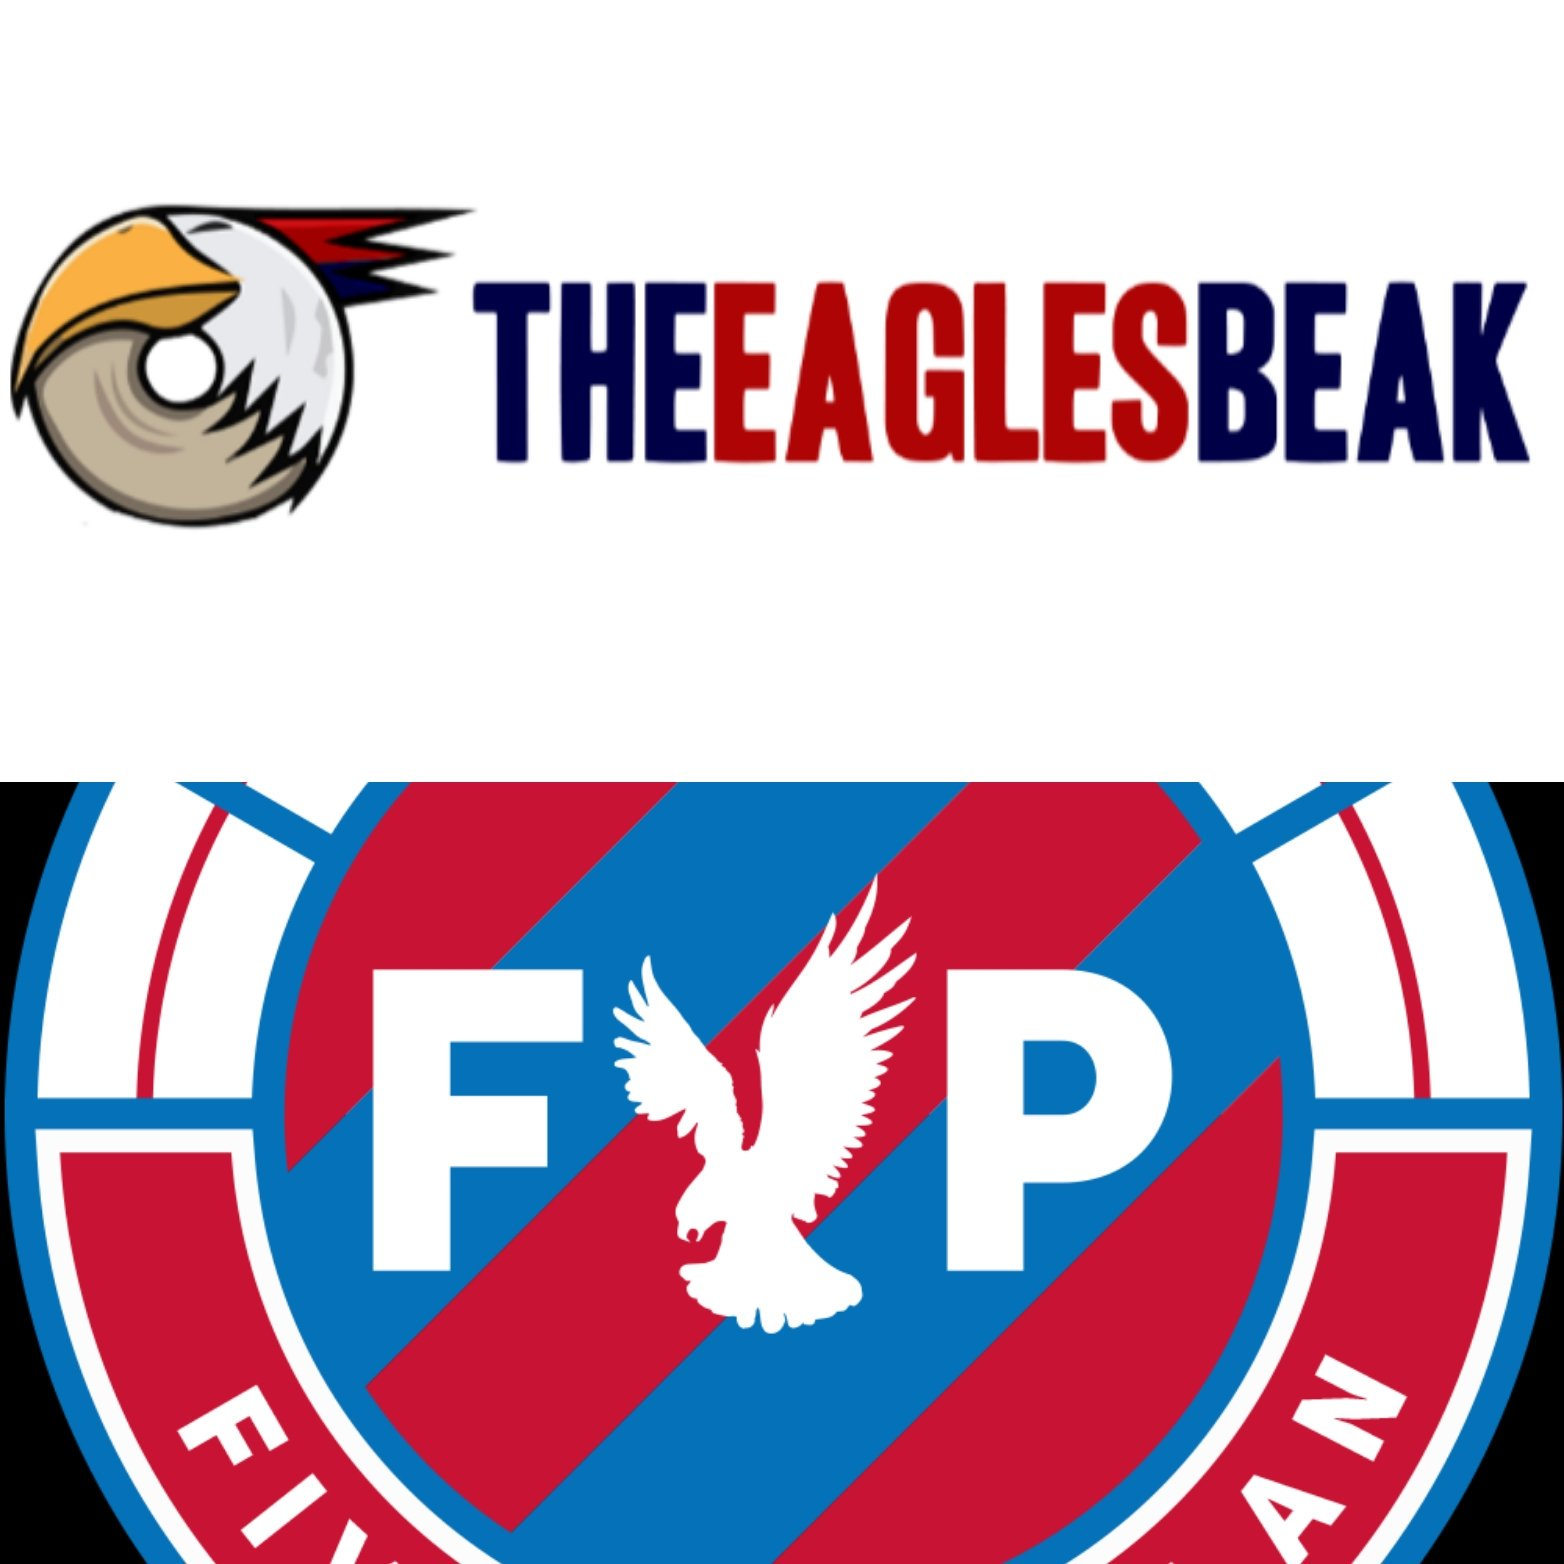 The Eagles Beak and FYP